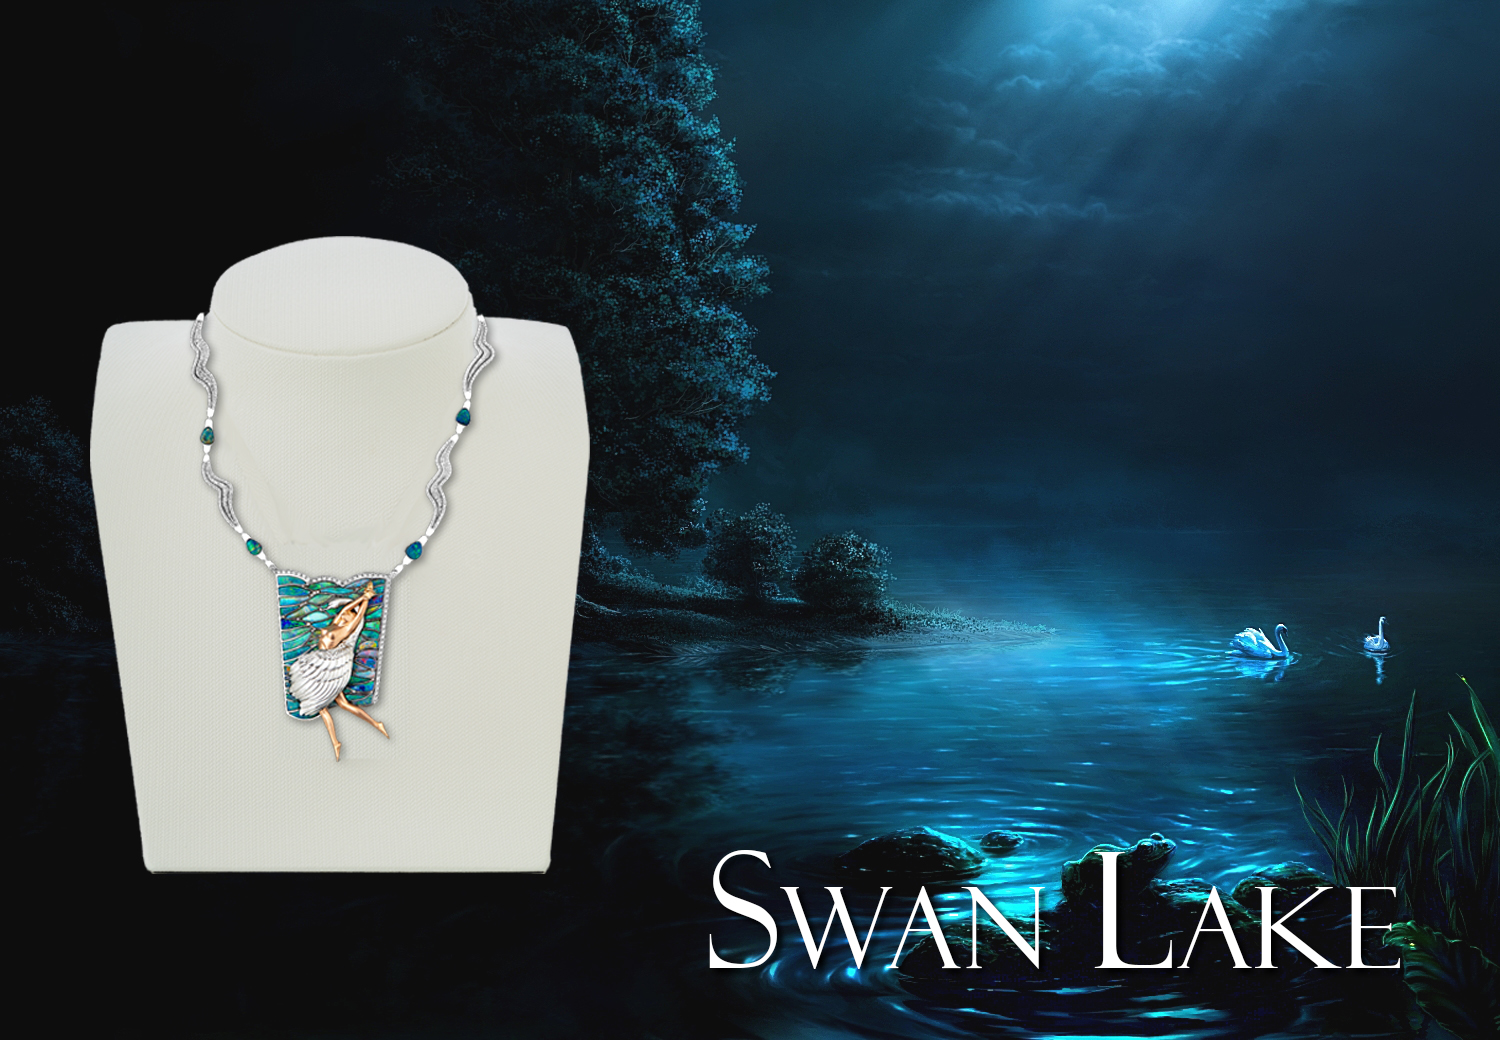 Jaime-Moreno-Art-in-Fine-Jewelry-Swan-Lake